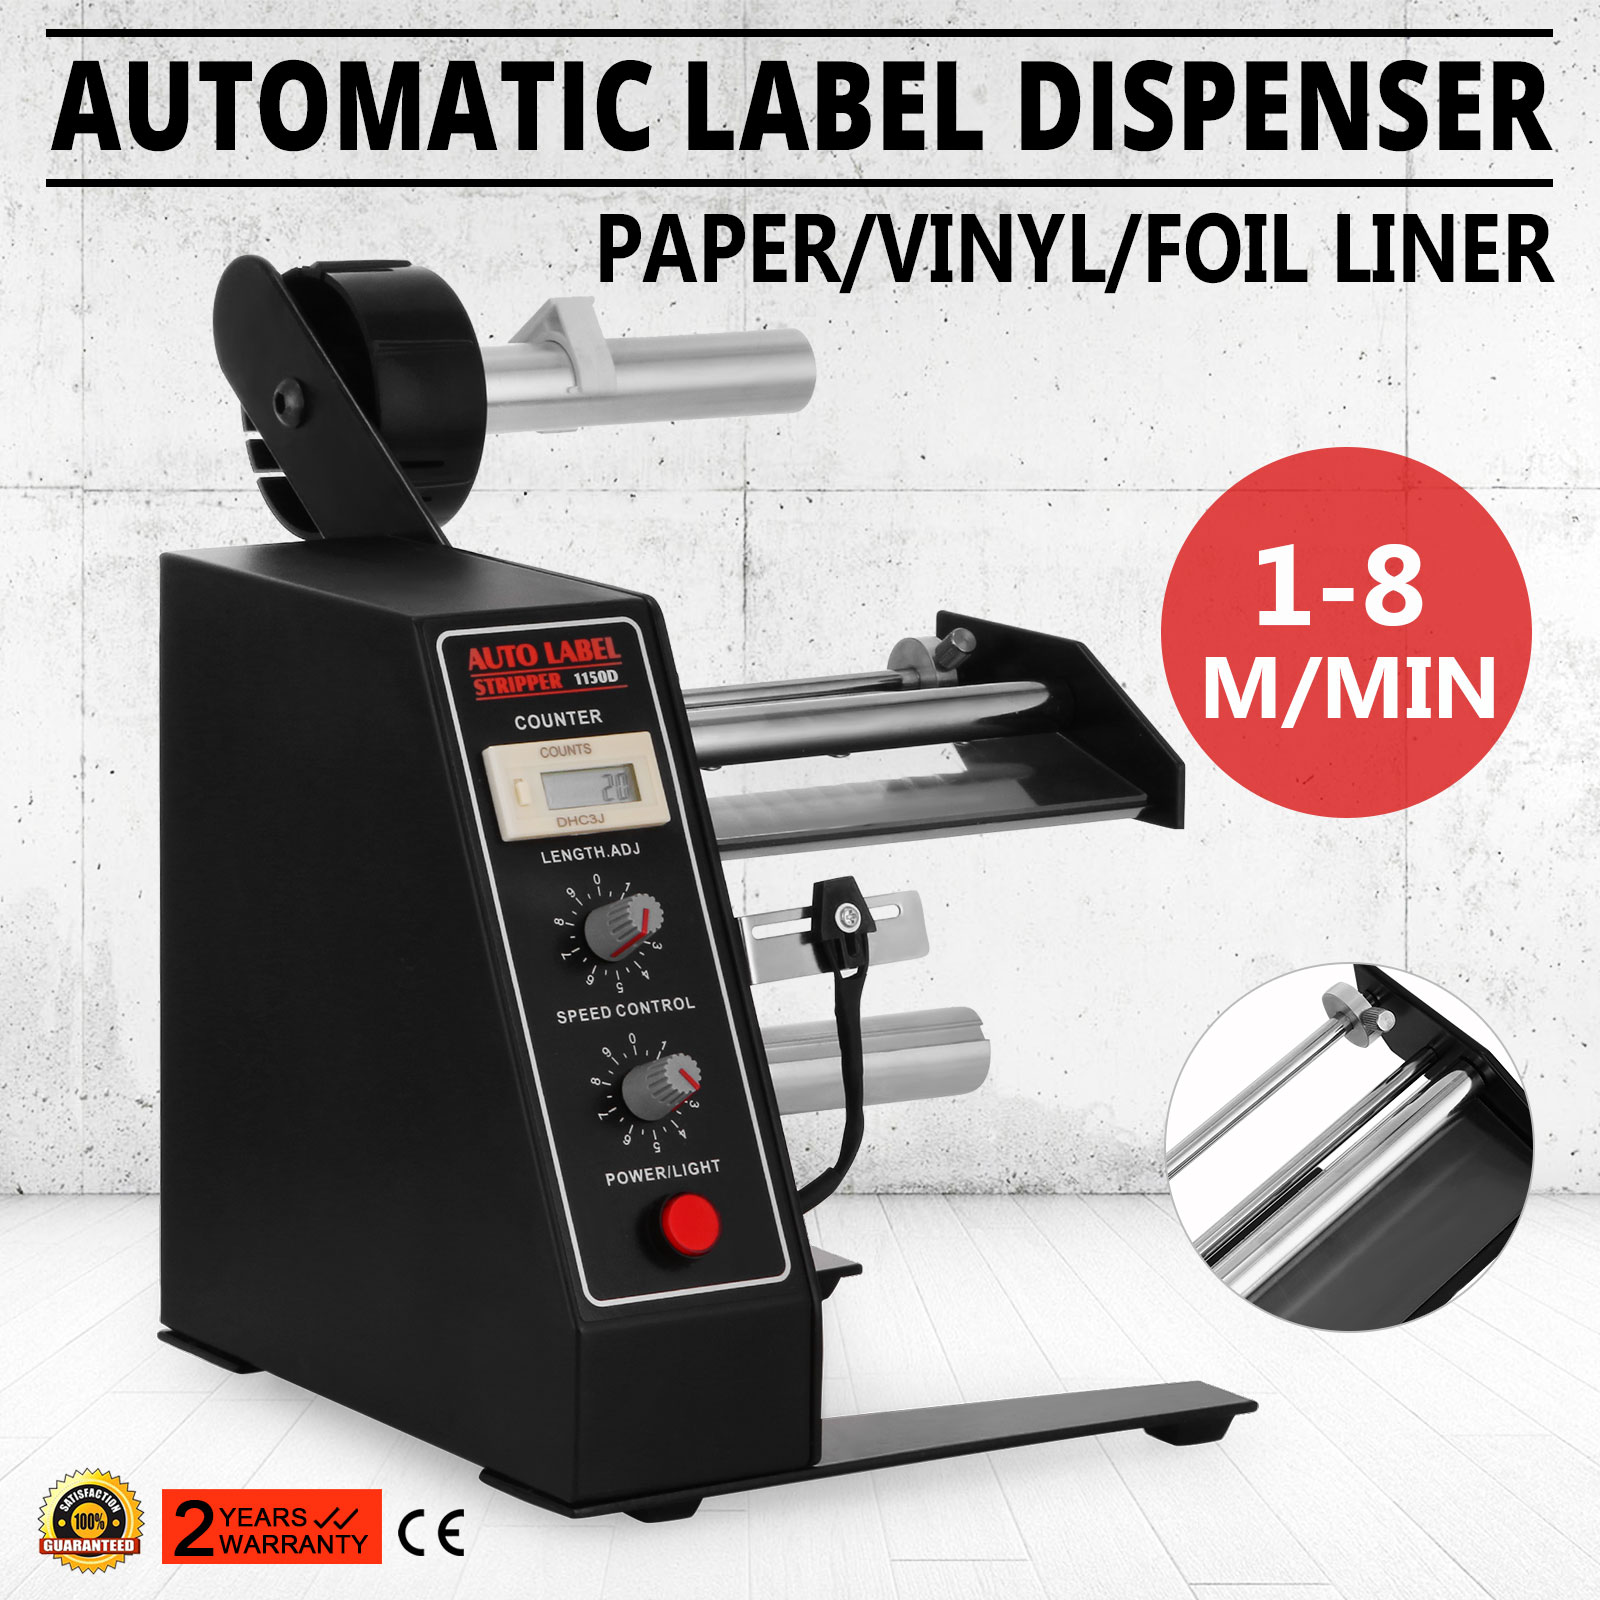 VEVOR Auto Label Dispenser Device Automatic Sticker Separating Machine AL-1150D NEW  Digital Control  4-140mm With Free Shipping